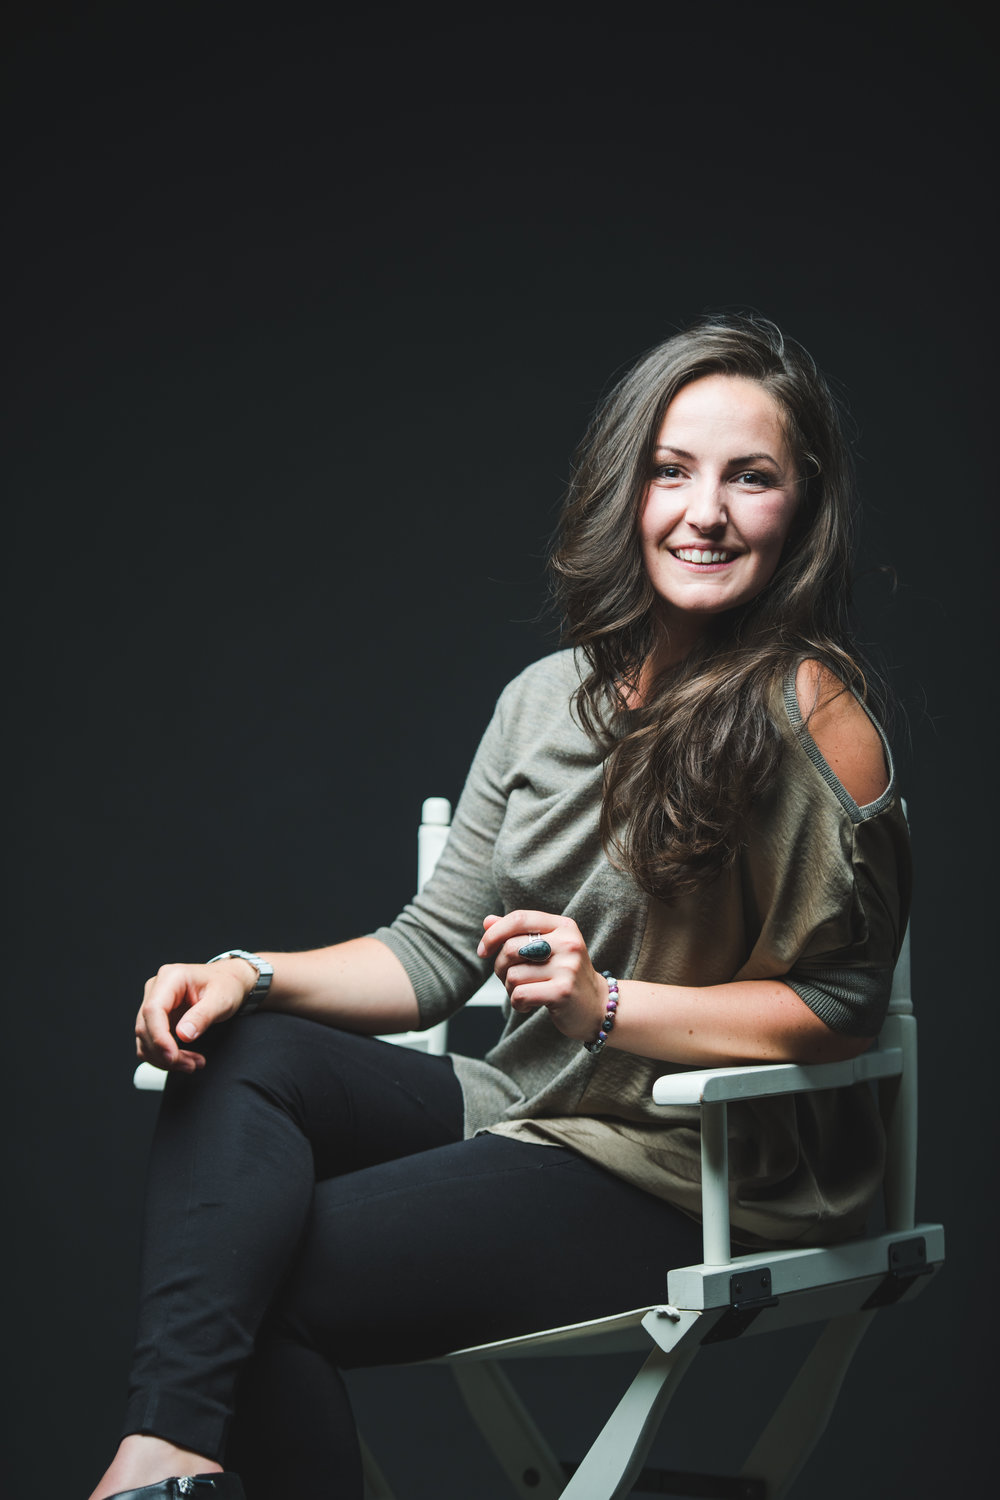 Michelle Aubrey - I will never forget the moment when I was a little girl watching Oprah, she was giving away lots of things on TV, creating awareness on poverty and abuse and helping people. I knew I wanted to help people too.Today, I get to do exactly that.What a journey life is! From farm girl to big city girl. From Banking, to Real Estate in New Zealand, from live-in carer for people with different levels of paralysis, to co-creating a company for women's stress relief and empowerment in England. My purpose is clear; to powerfully serve people, so they can serve others. It's a perpetual cycle of greatness, and, it's available for everyone.My passion is People. My mission is to serve. The ultimate goal for our company is to create a world where Anything is available for Anyone, Anywhere.Living on the soul nourishing Vancouver Island, I get to spend my days in nature, enjoying the beach and coaching inspiring people. I love a good film, I'm guilty - chick flicks are my favorite. I'm star trek, not star wars and I'm chocolate-anything for Dessert, which brings me to the most important part of my bio, Dessert is my favorite dish!The women I work with are inspiring, determined, powerful and ready to create something altruistic in the world. We are all constantly on a journey of discovery and transformation and I am passionate about creating a space for this my clients.You are worthy.You are enough.You are already whole and complete.Interested in coaching with me? Click here for a little more info.